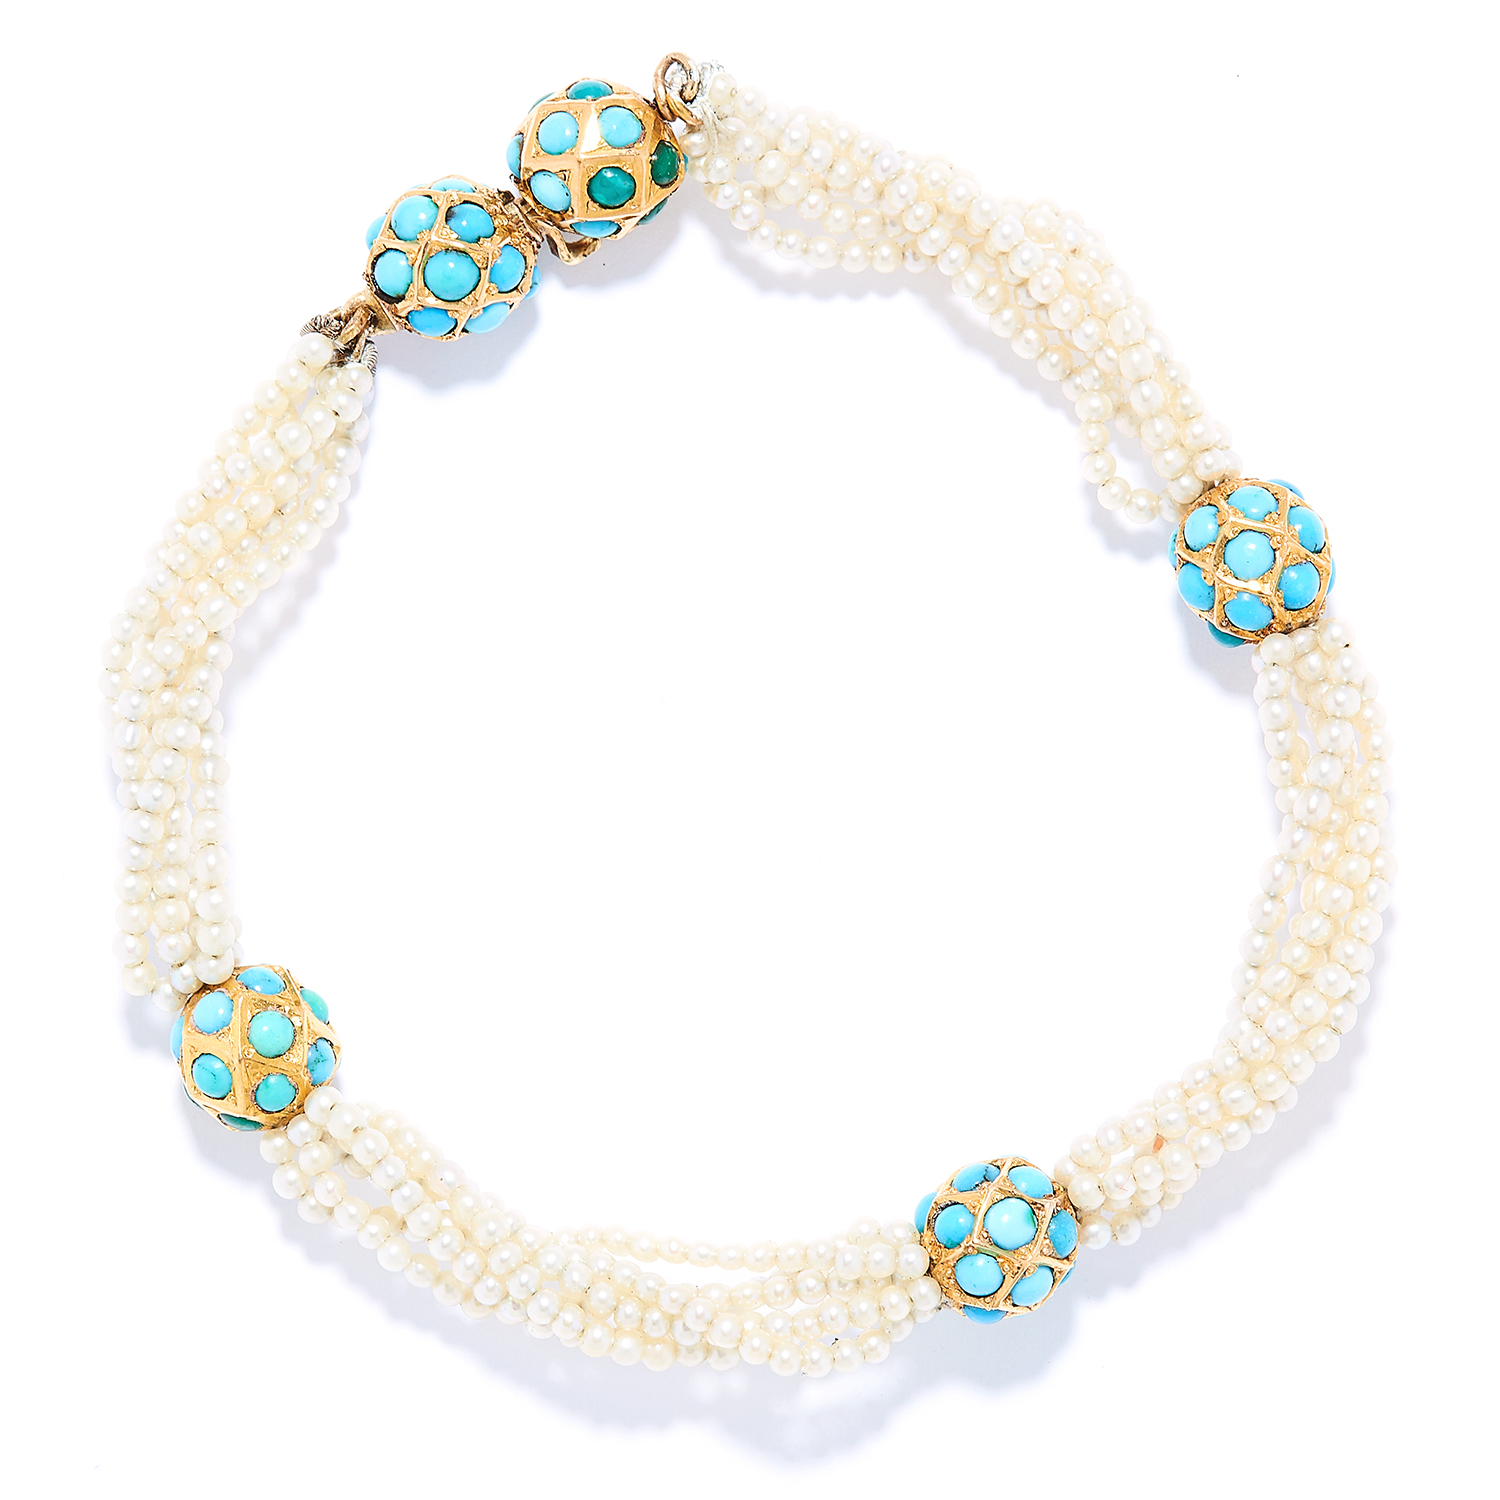 Los 21 - TURQUOISE AND SEED PEARL BRACELET in yellow gold, comprising of strands of seed pearls with cabochon